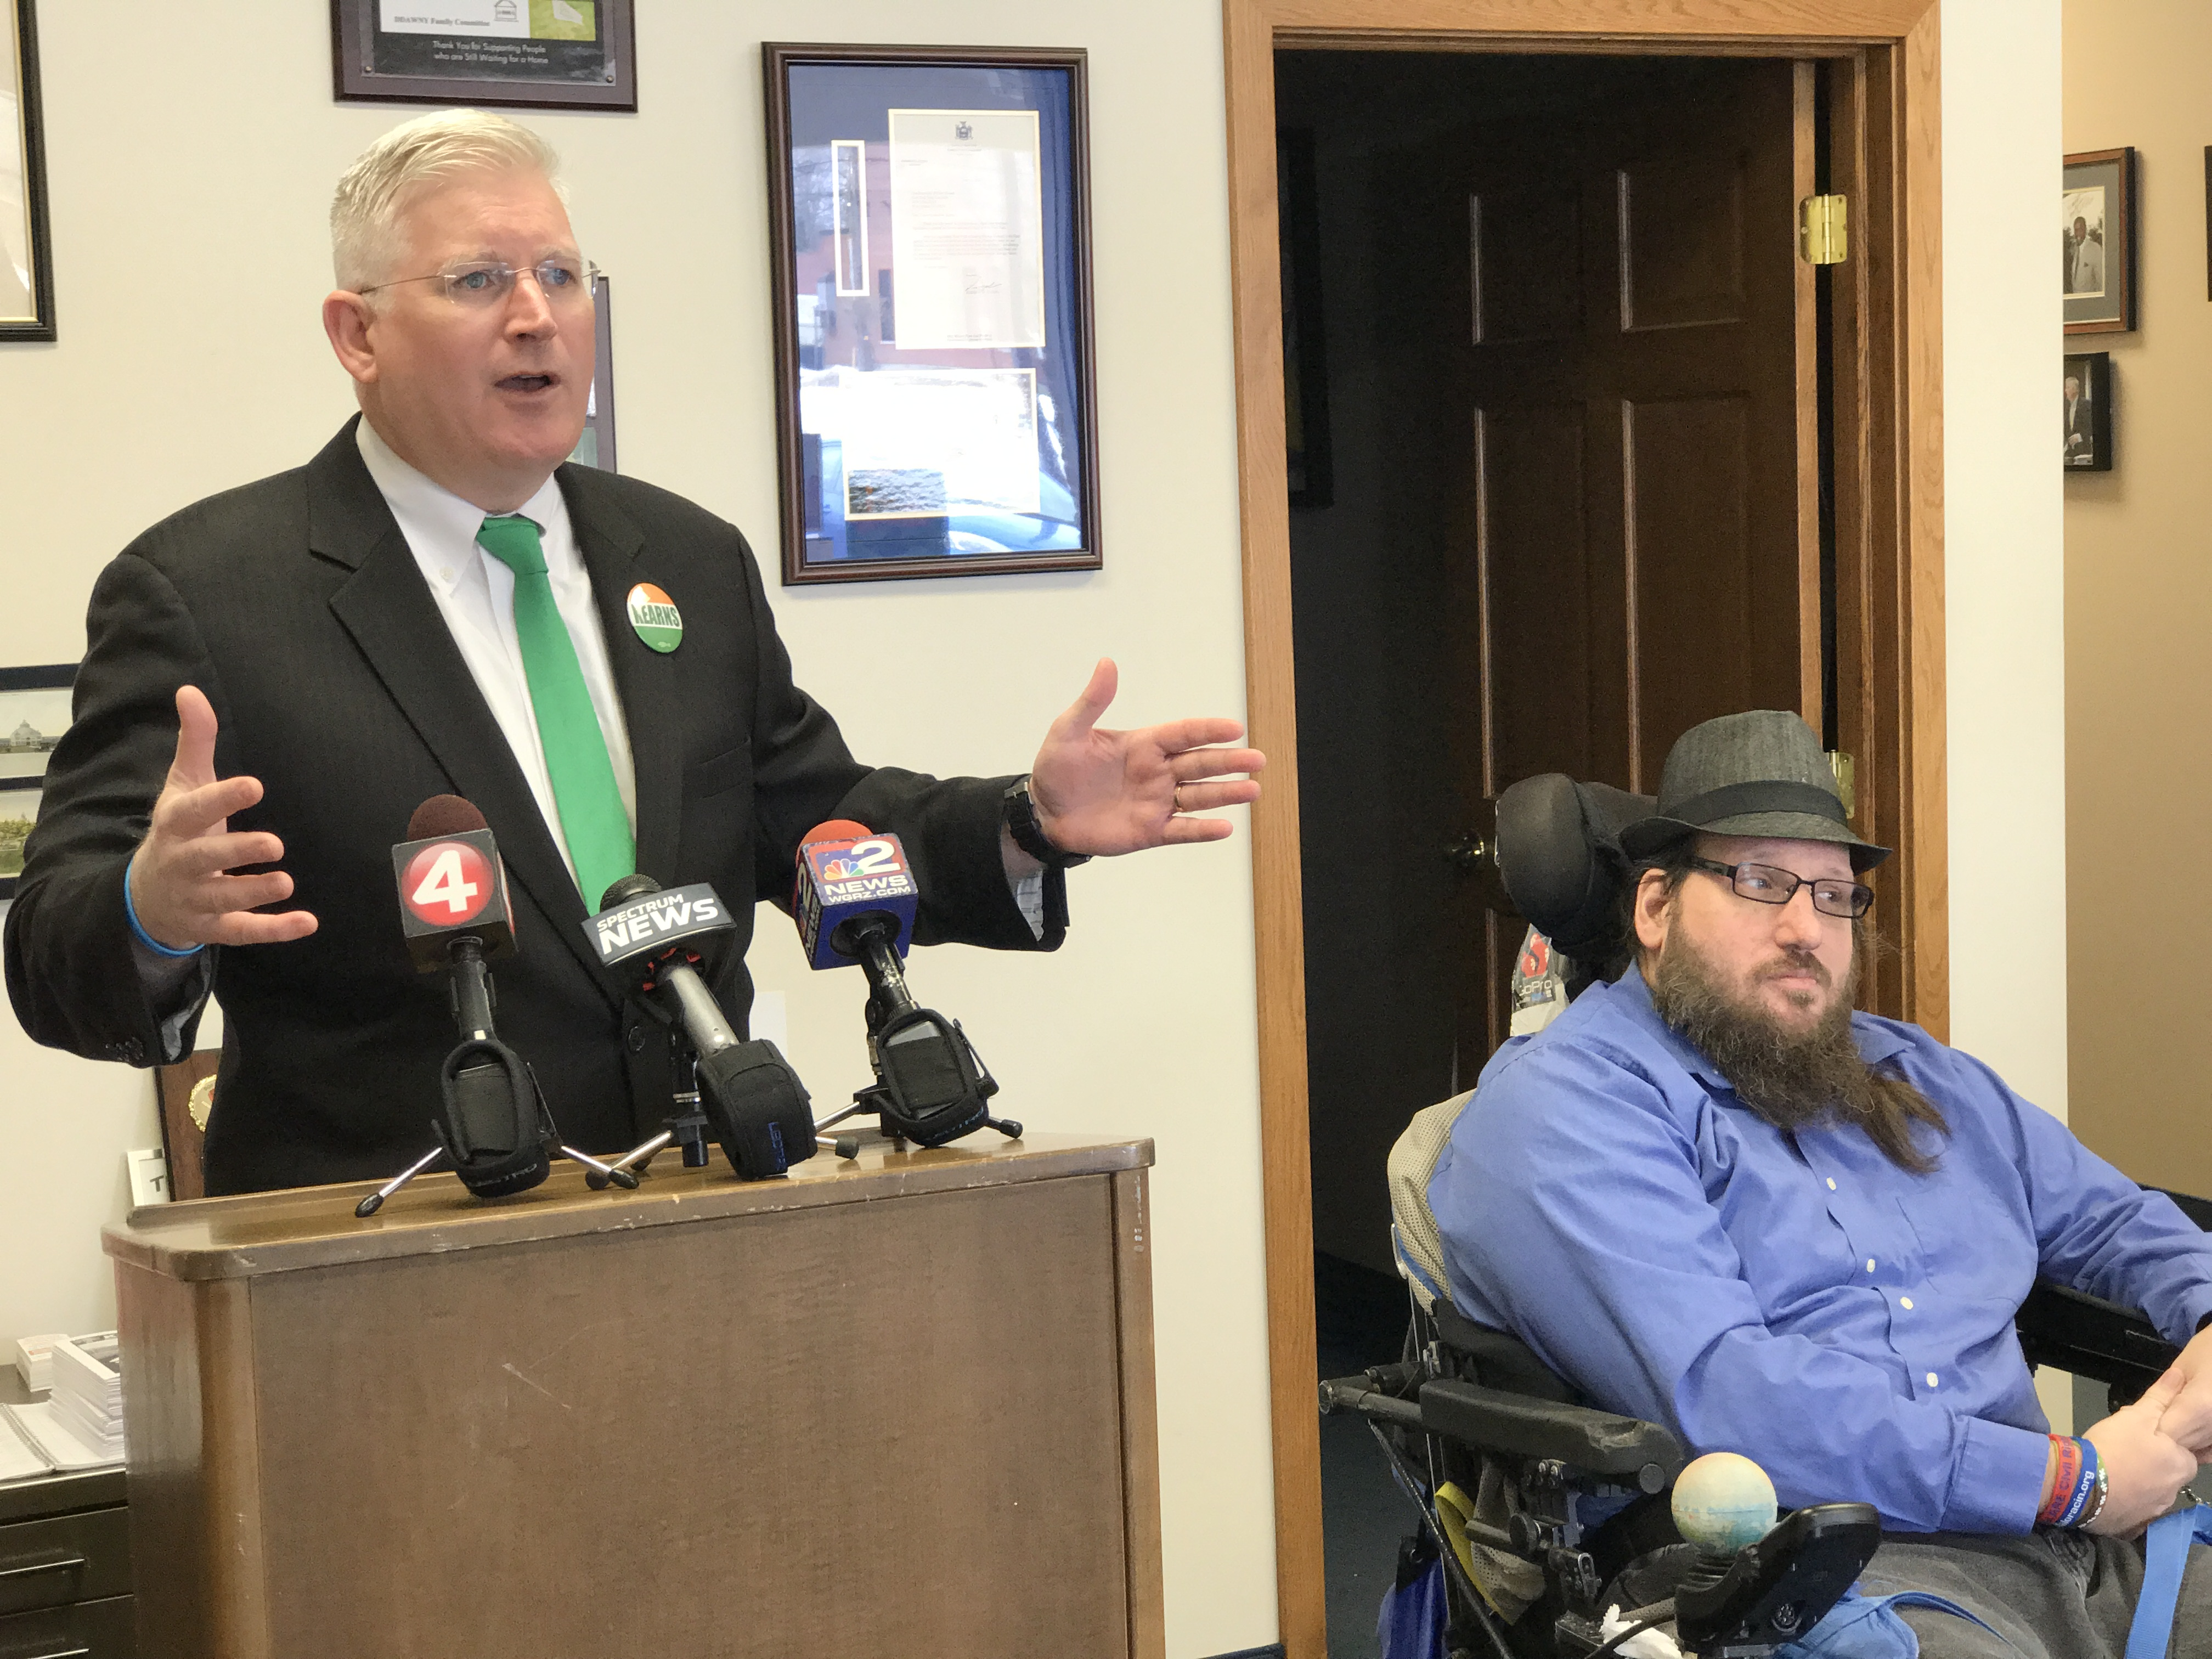 Assemblyman Michael P. Kearns discusses his concerns with NFTA's Paratransit with B.J. Stasio, right, a rider who depends on the service.